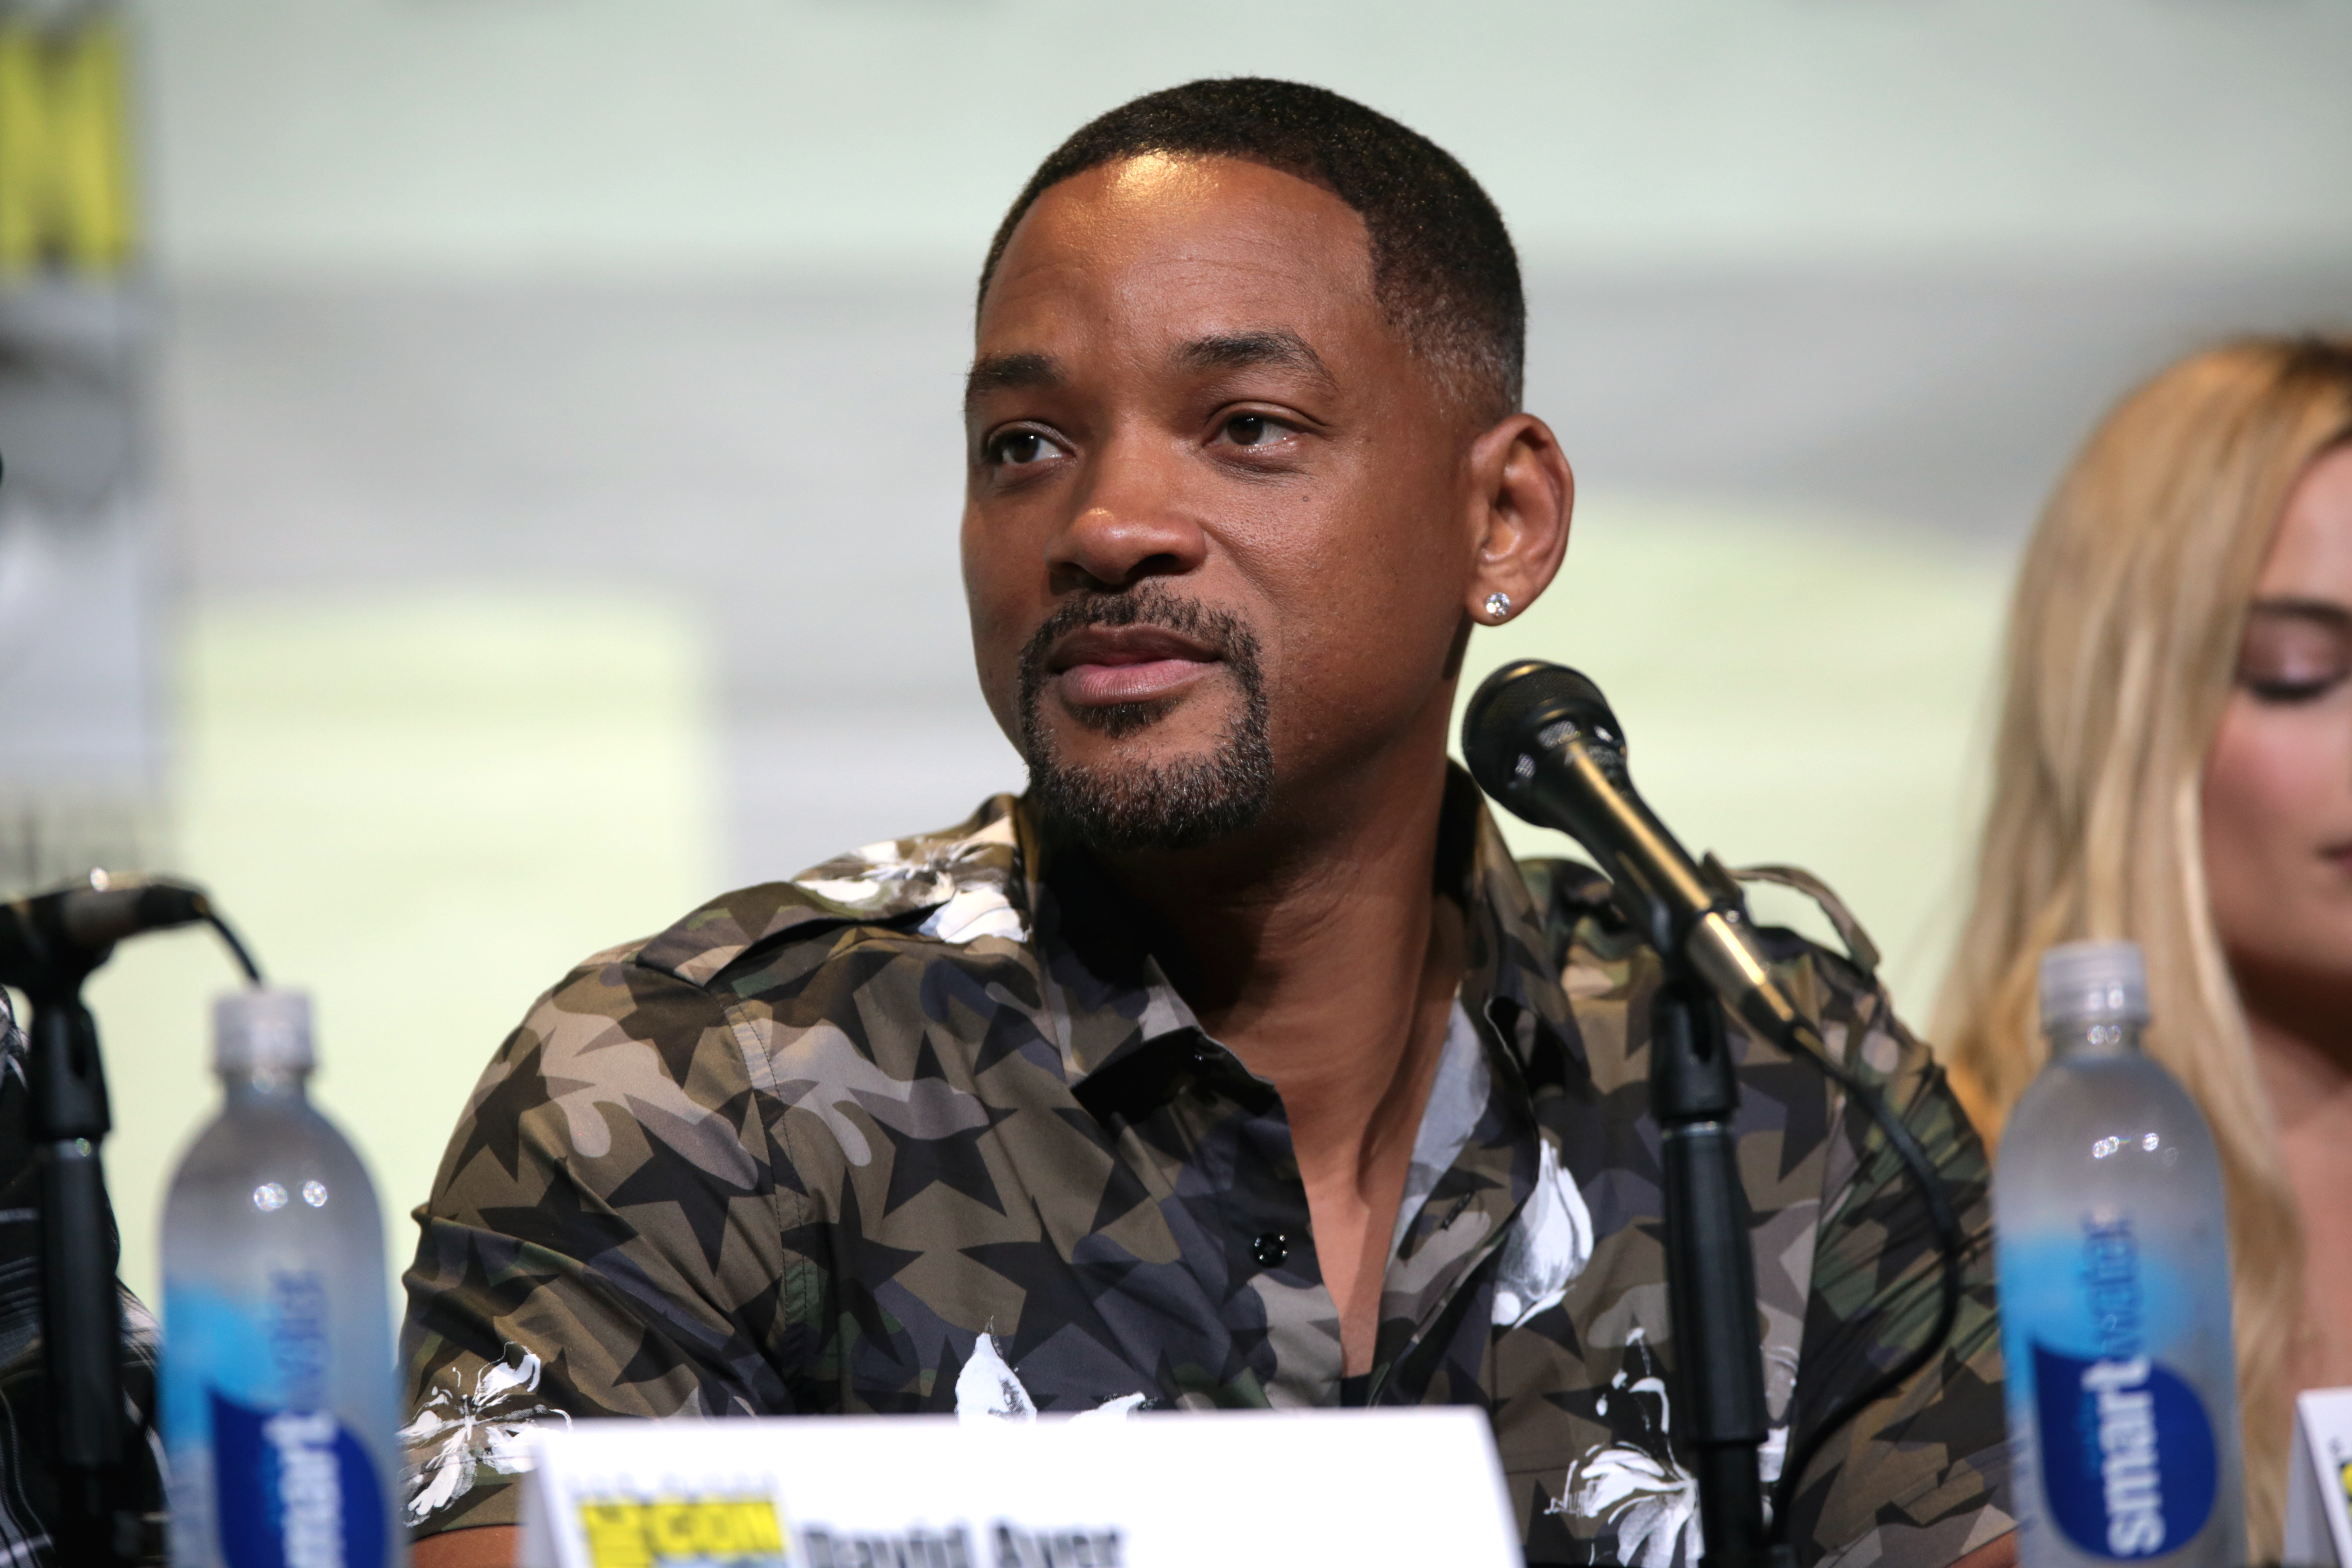 50 Powerful & Life-Changing Will Smith Quotes